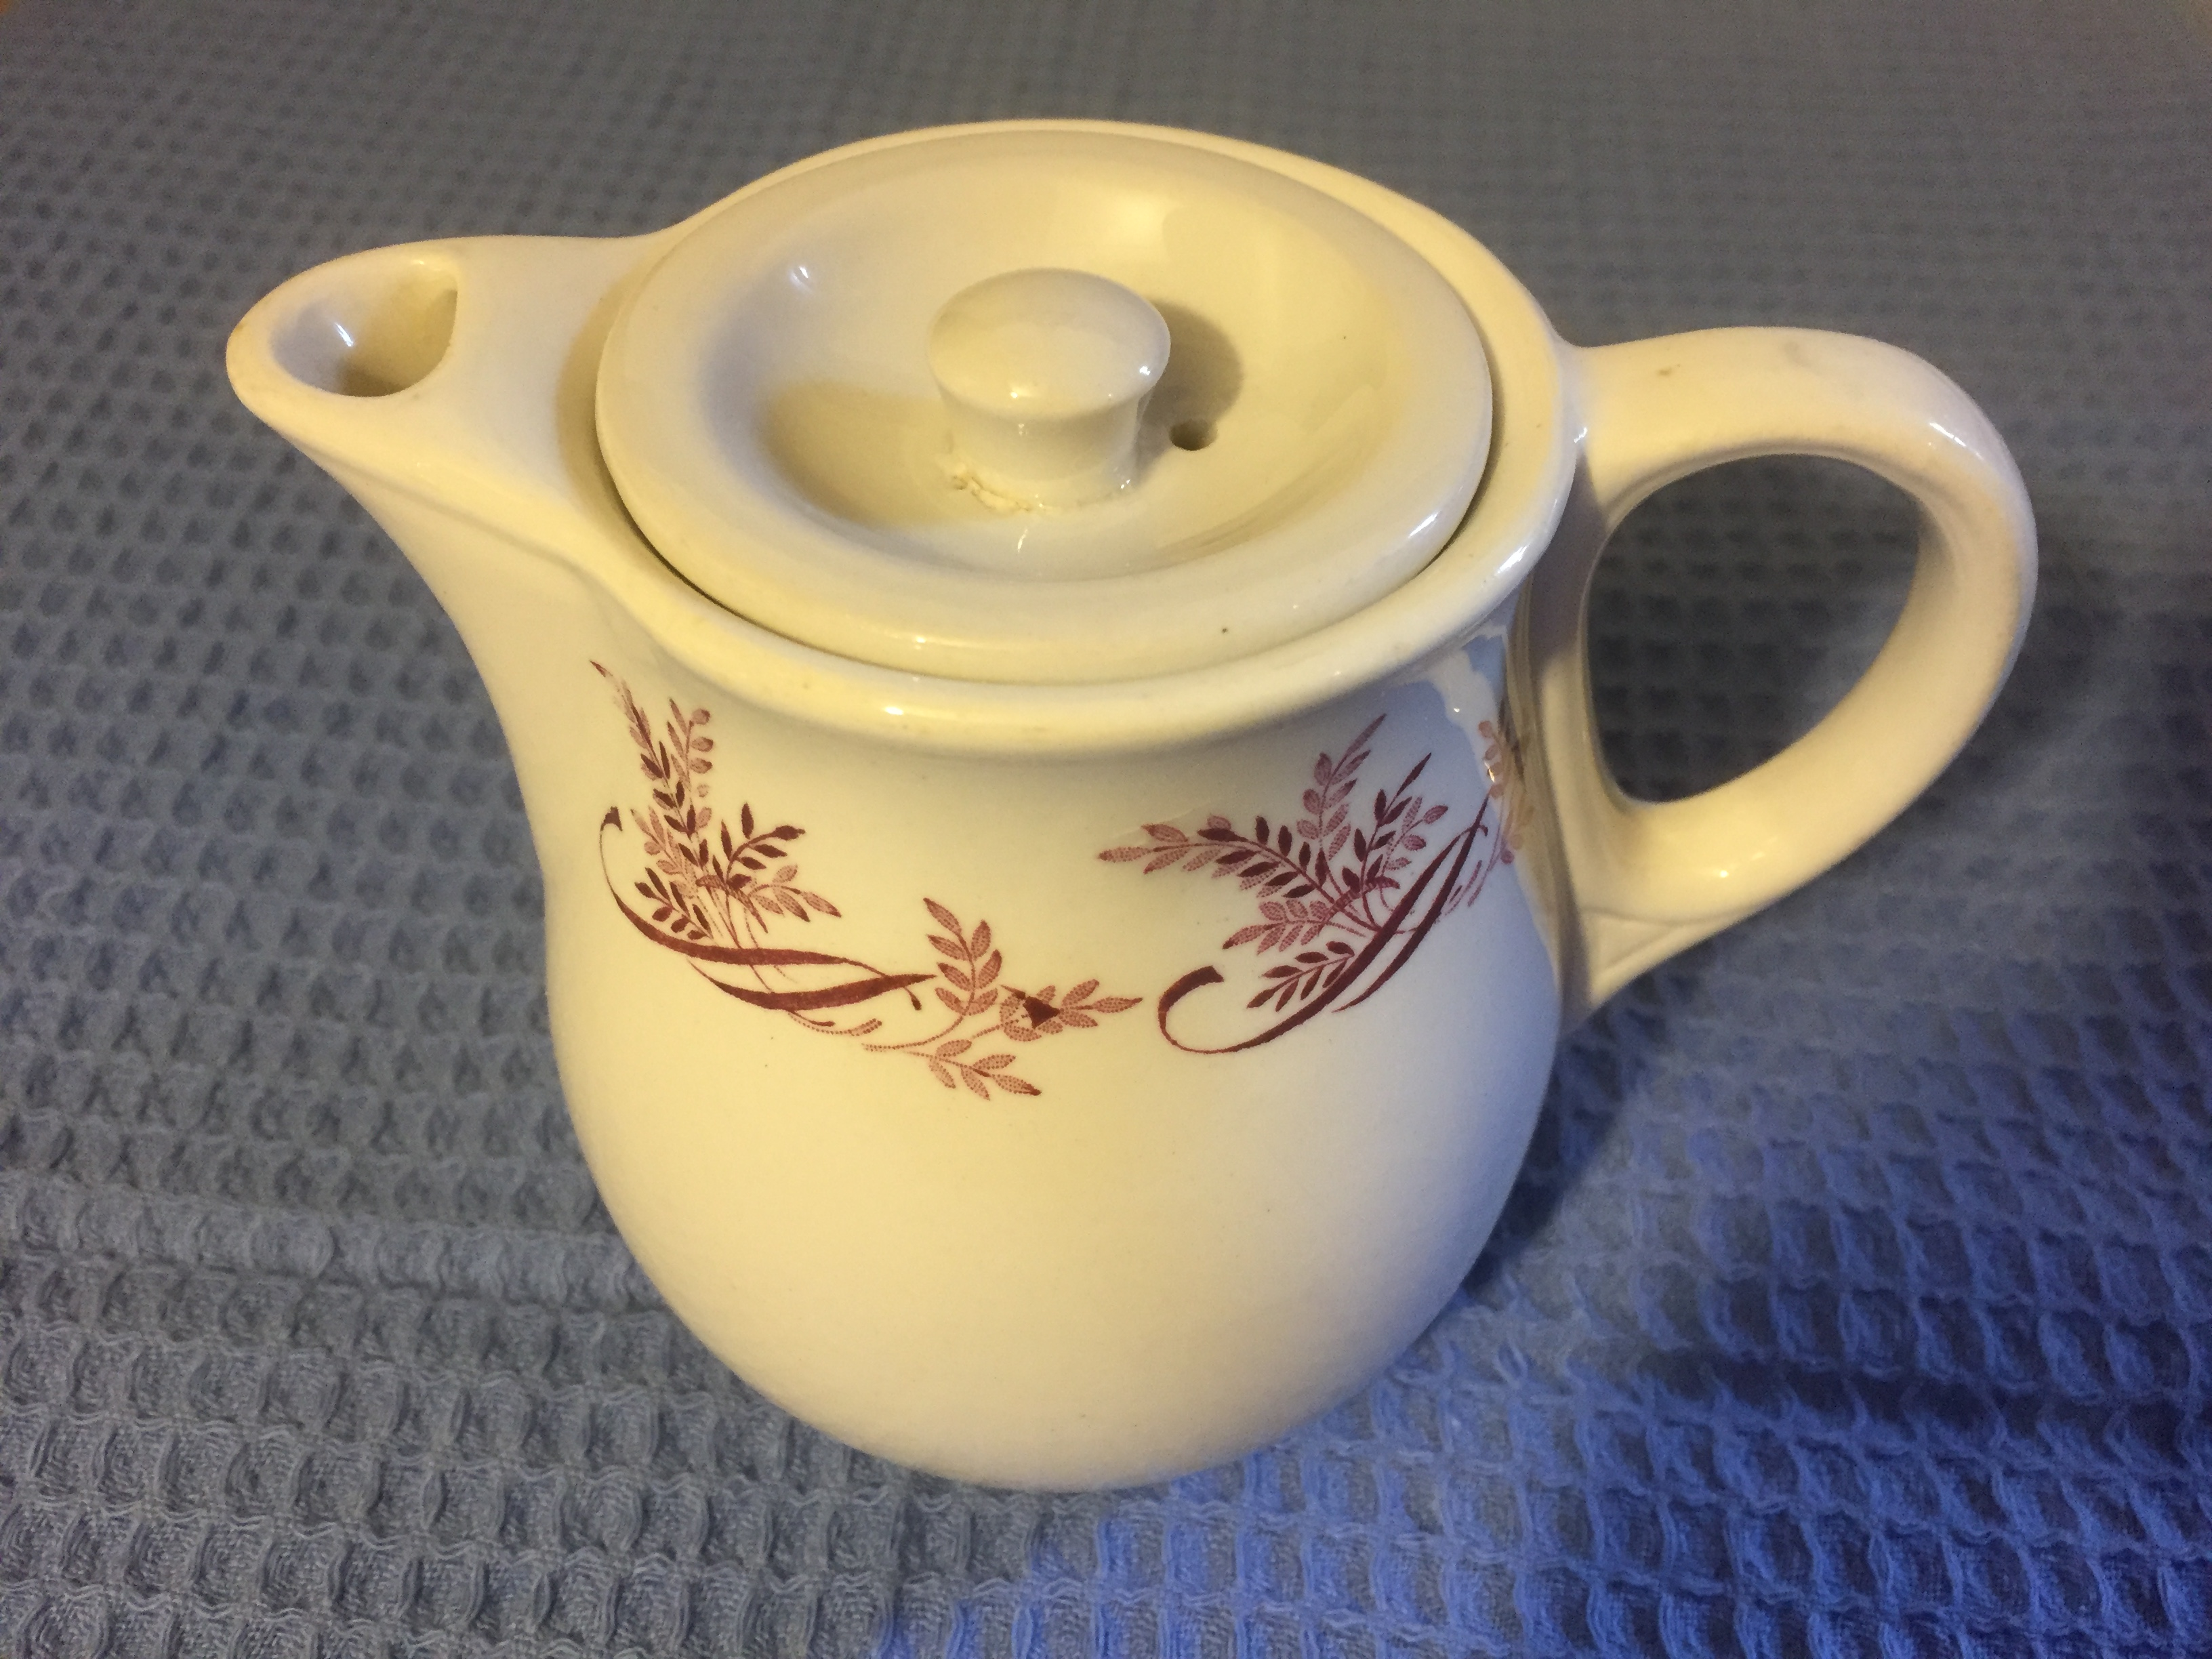 AS USED ON BOARD TEAPOT FROM THE BRITISH & COMMONWEALTH LINE